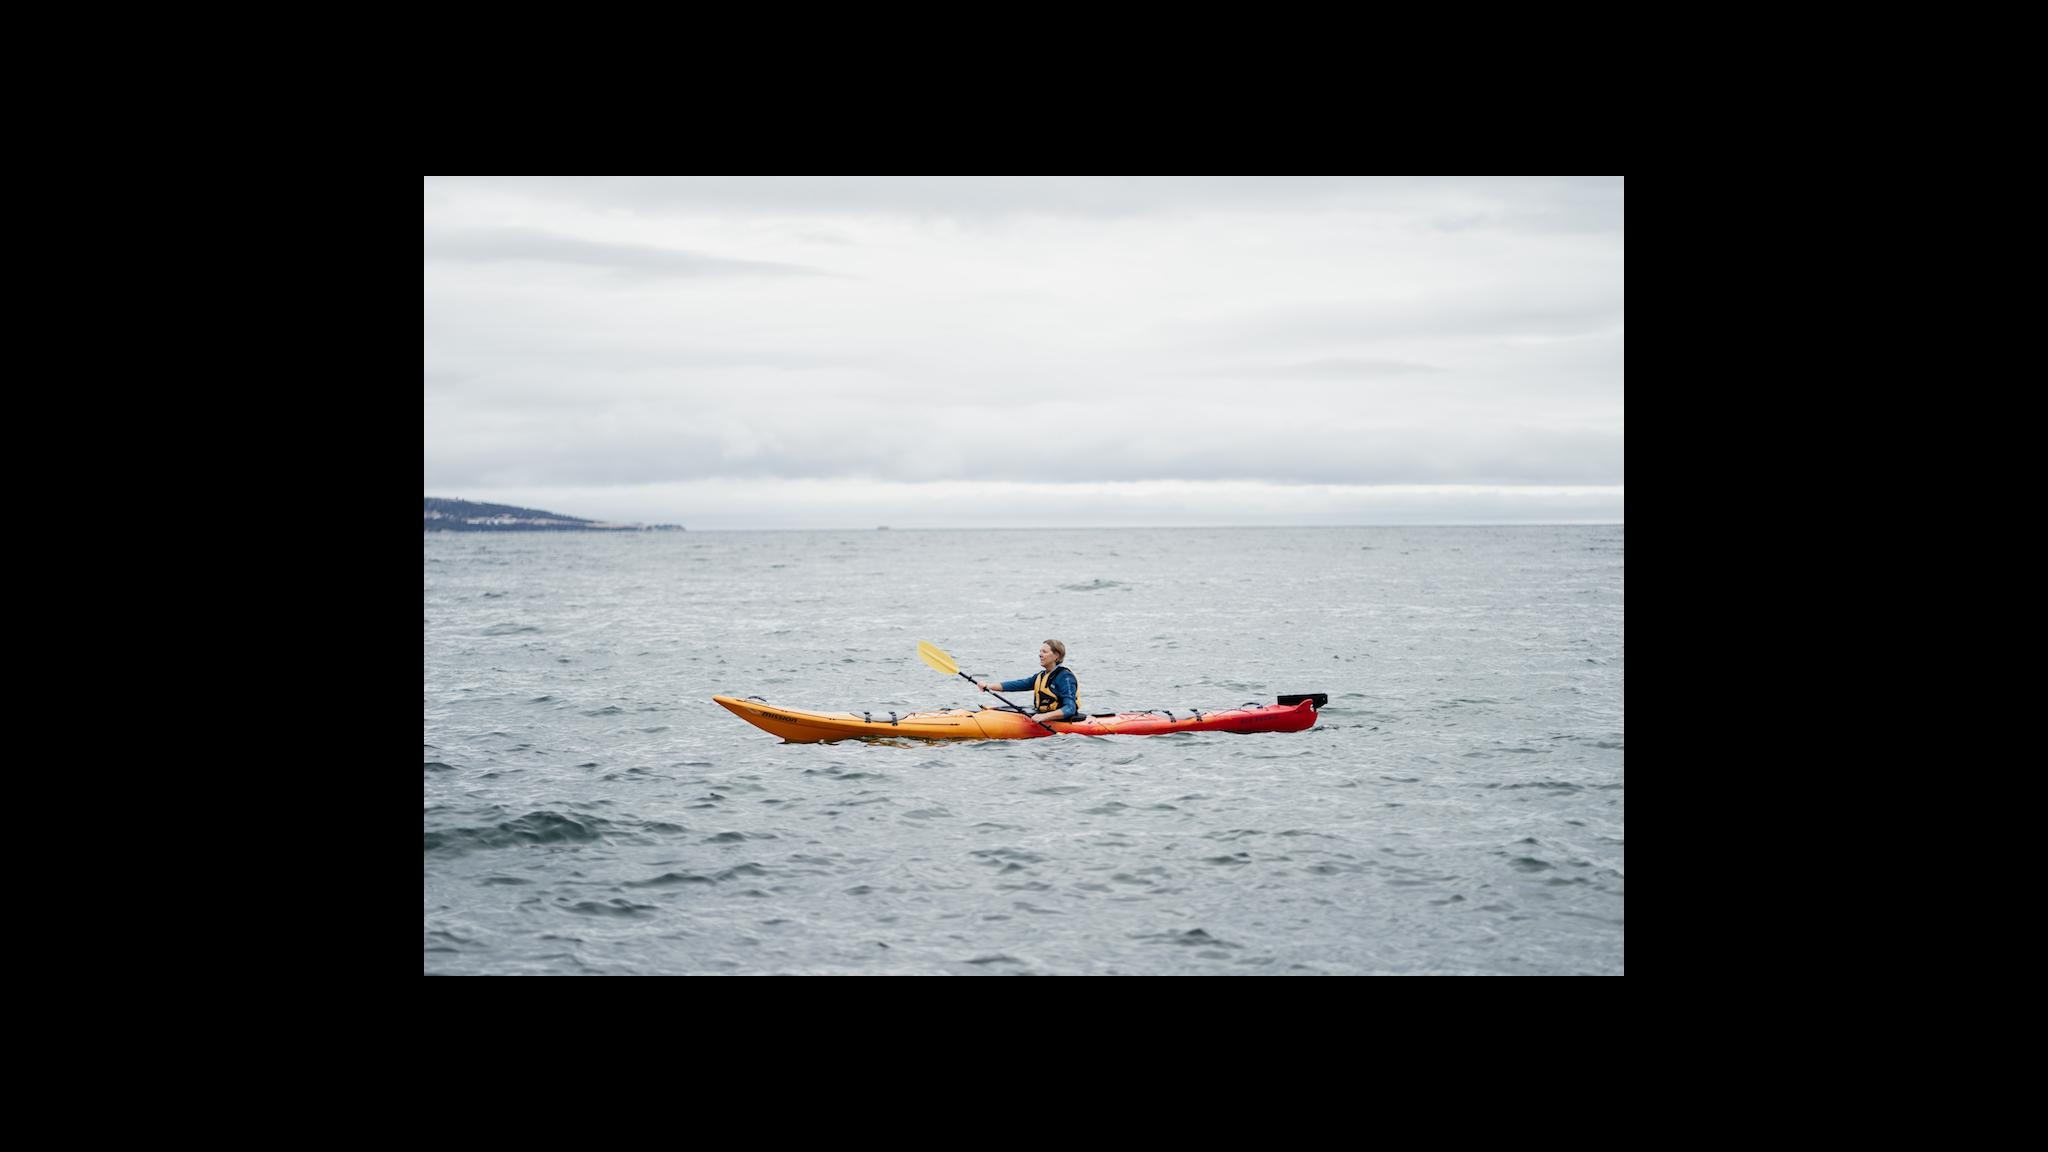 Roaring 40s Kayaking - Learn to kayak safely Hobart Tasmania